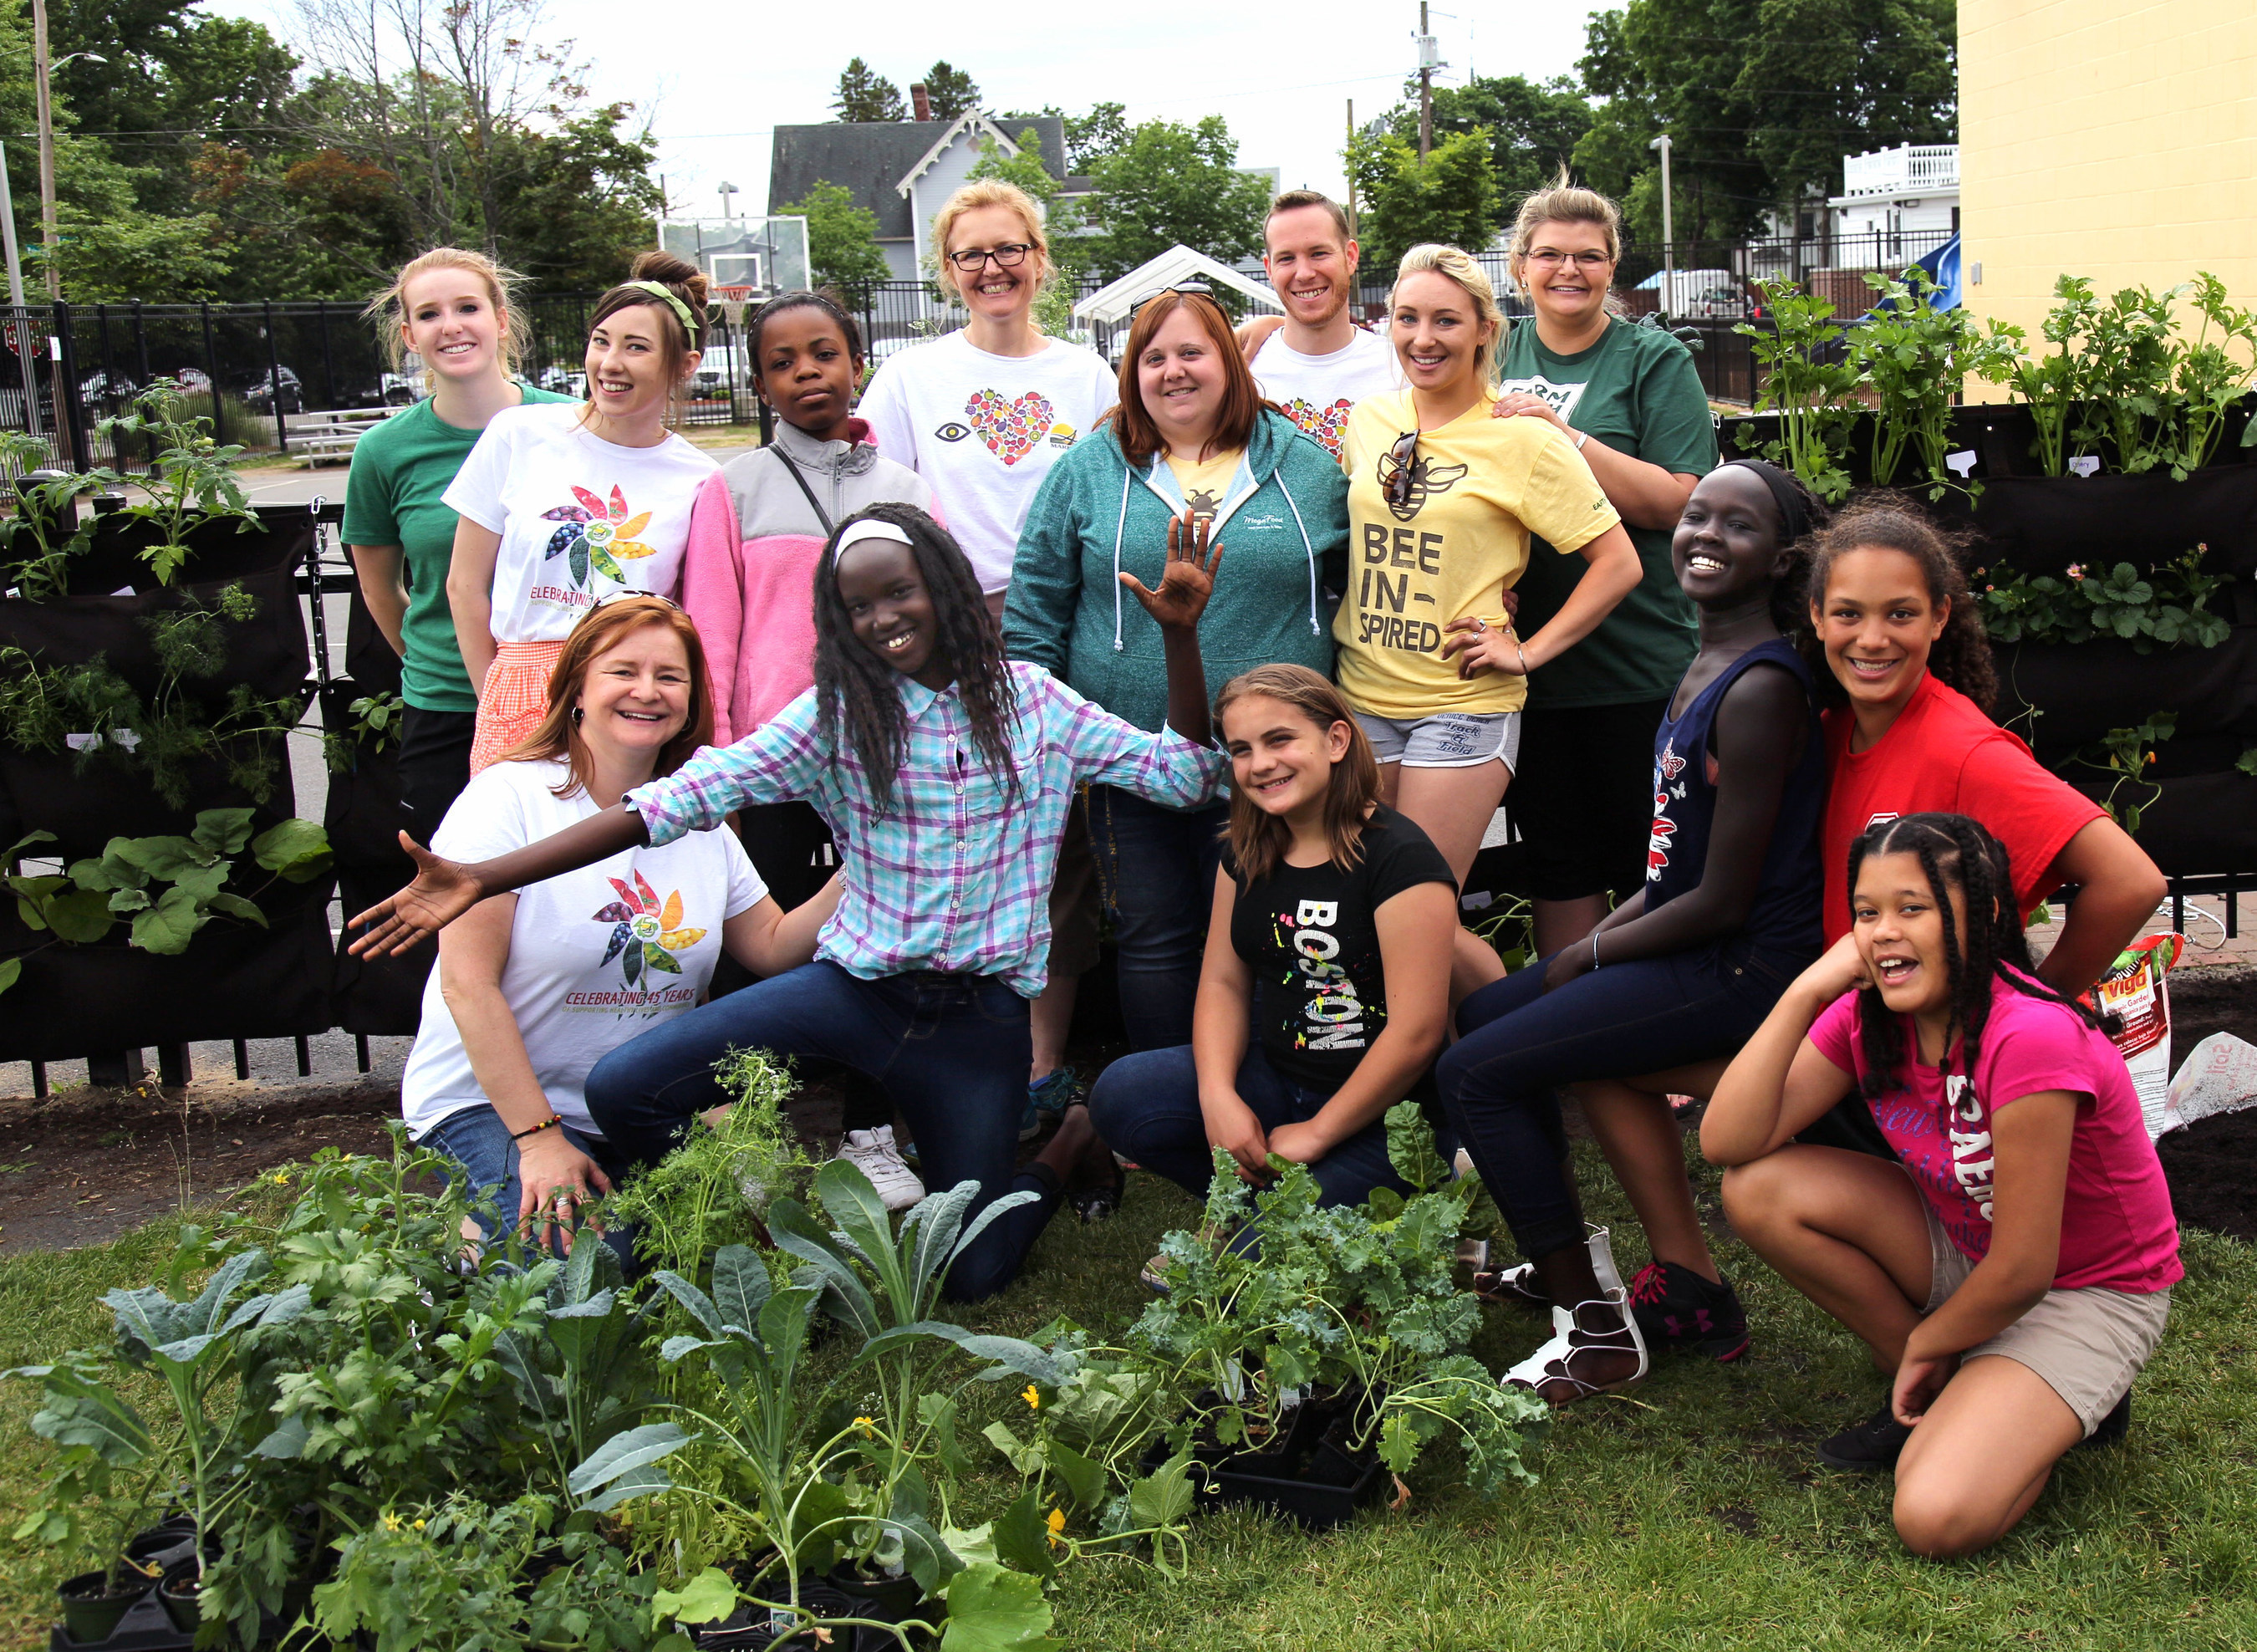 MegaFood Launches Initiative to Install Community Gardens in Partnership with Local Natural Retailers and Youth-Oriented Organizations